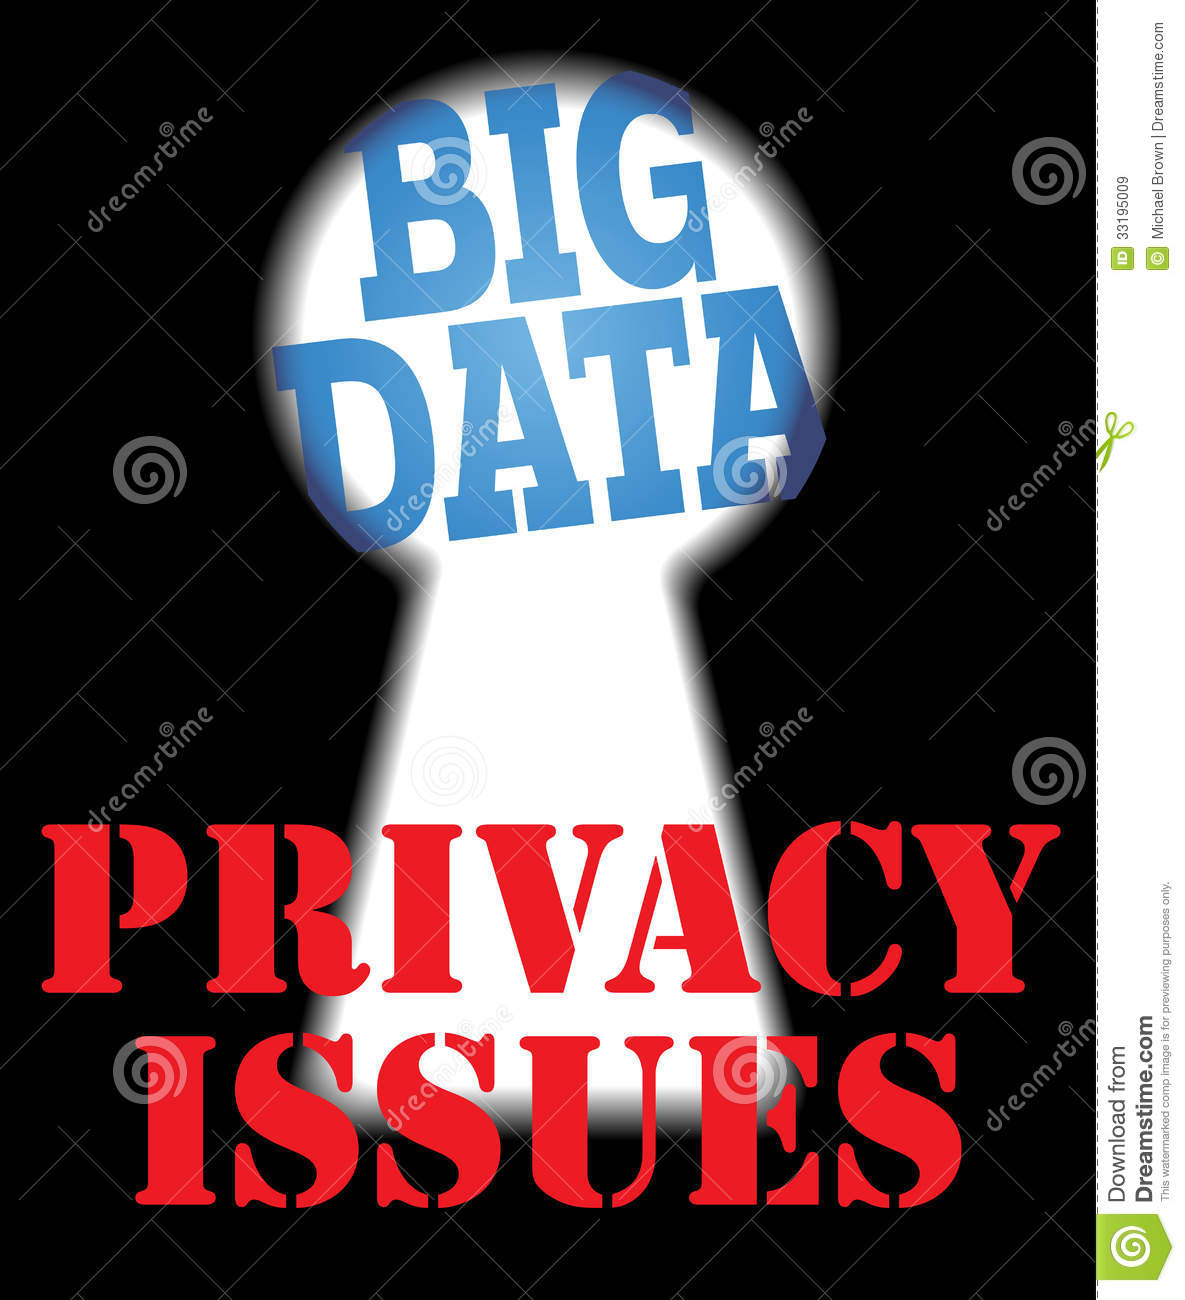 privacy issues internet essay